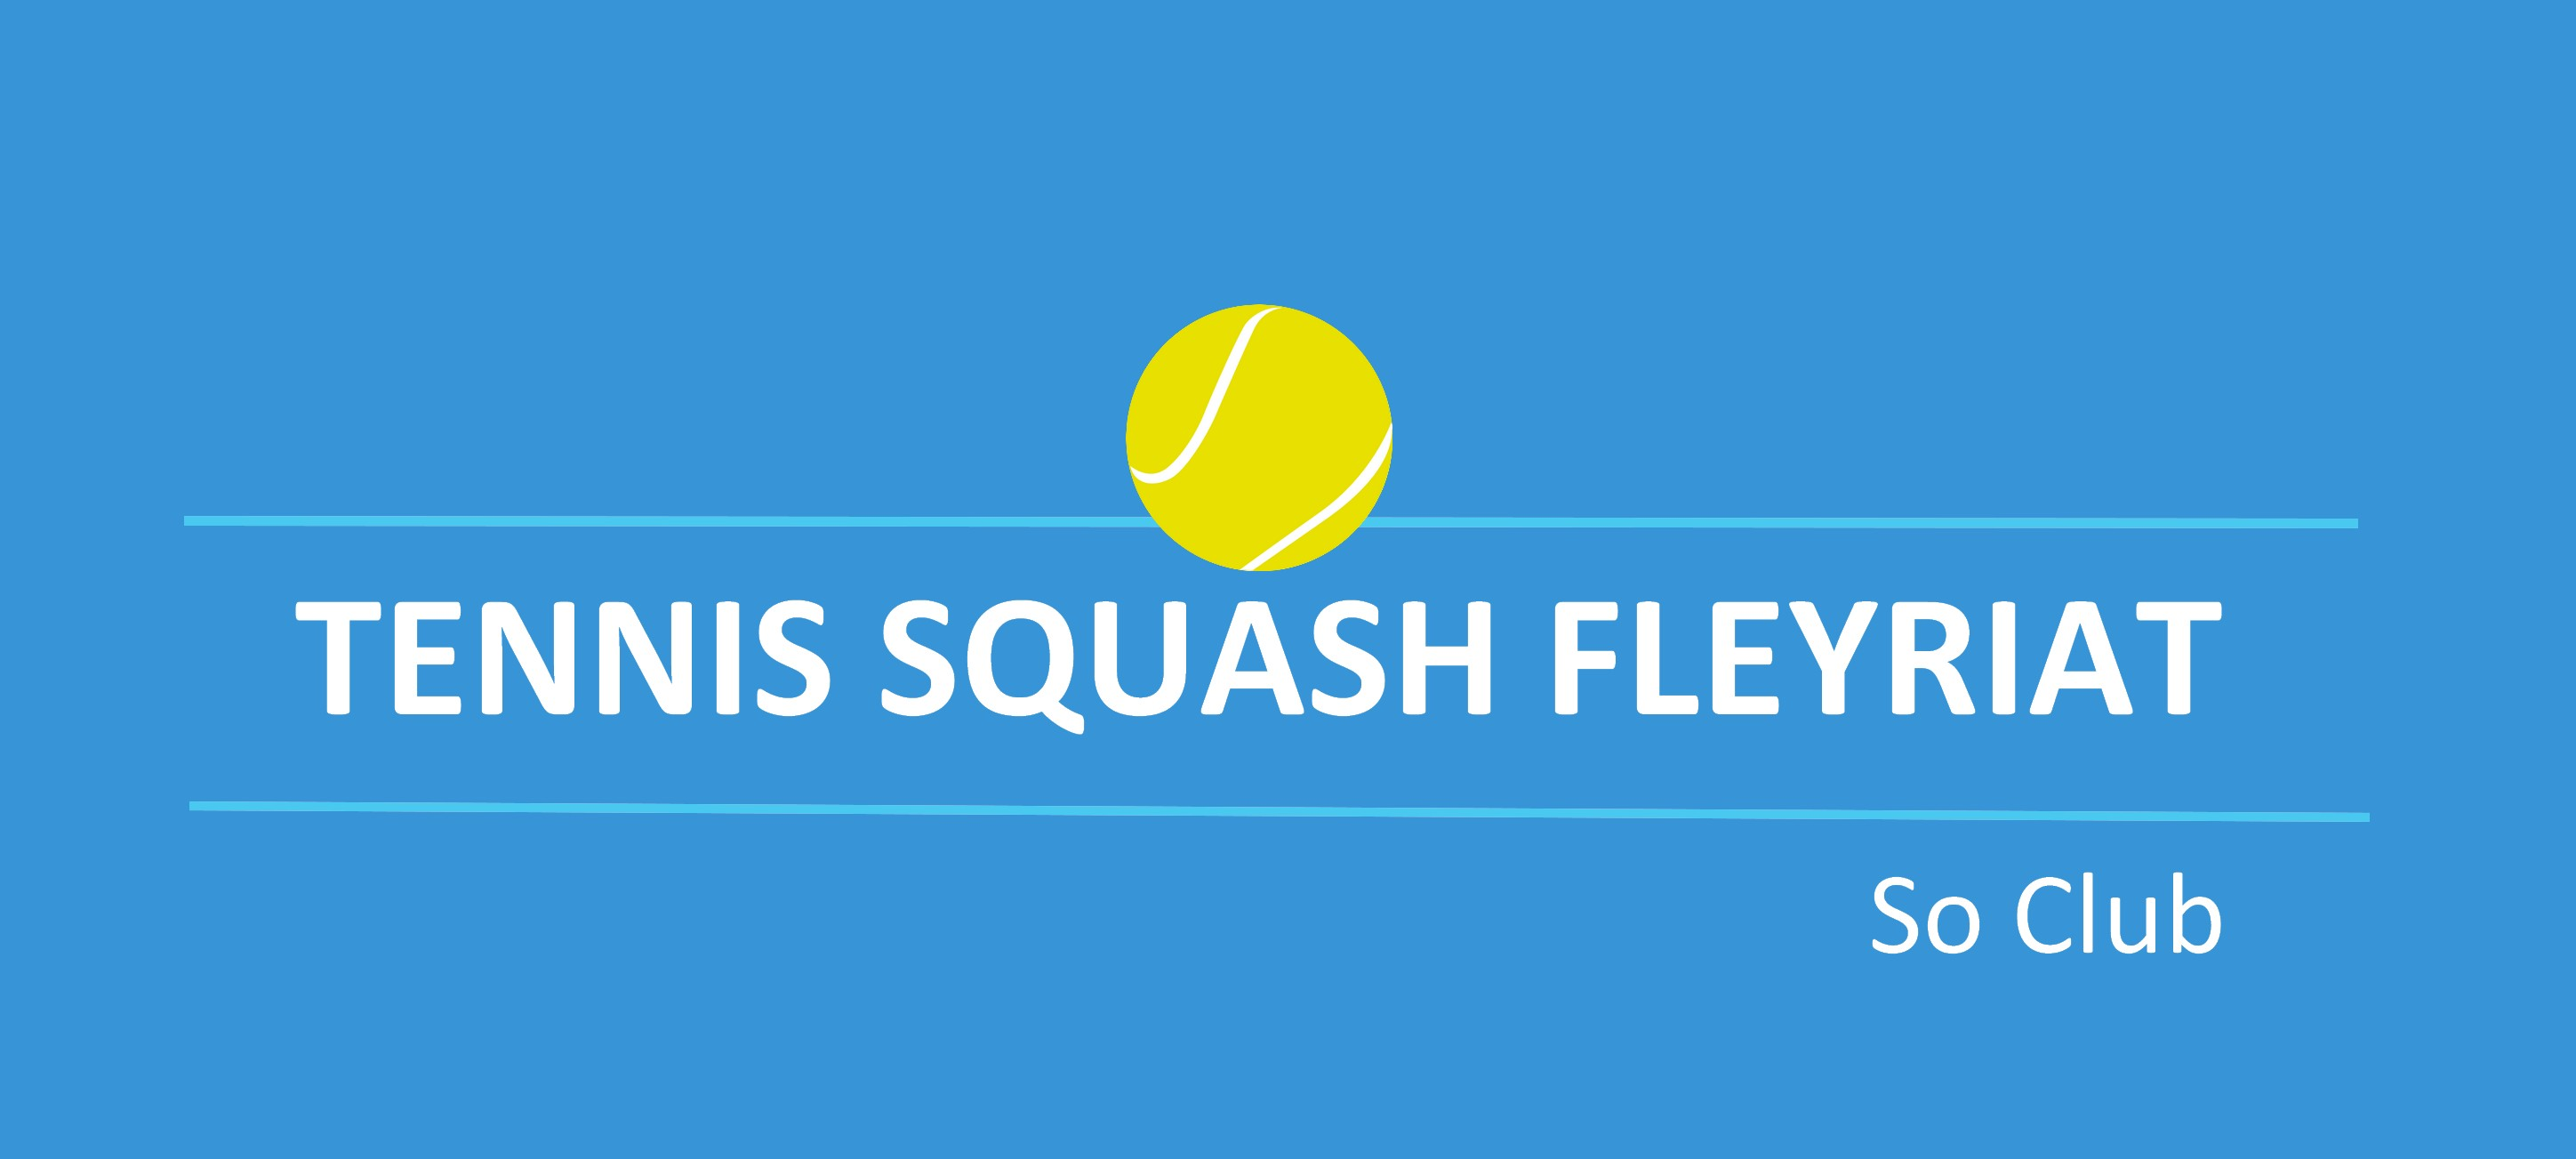 Tennis Squash Fleyriat